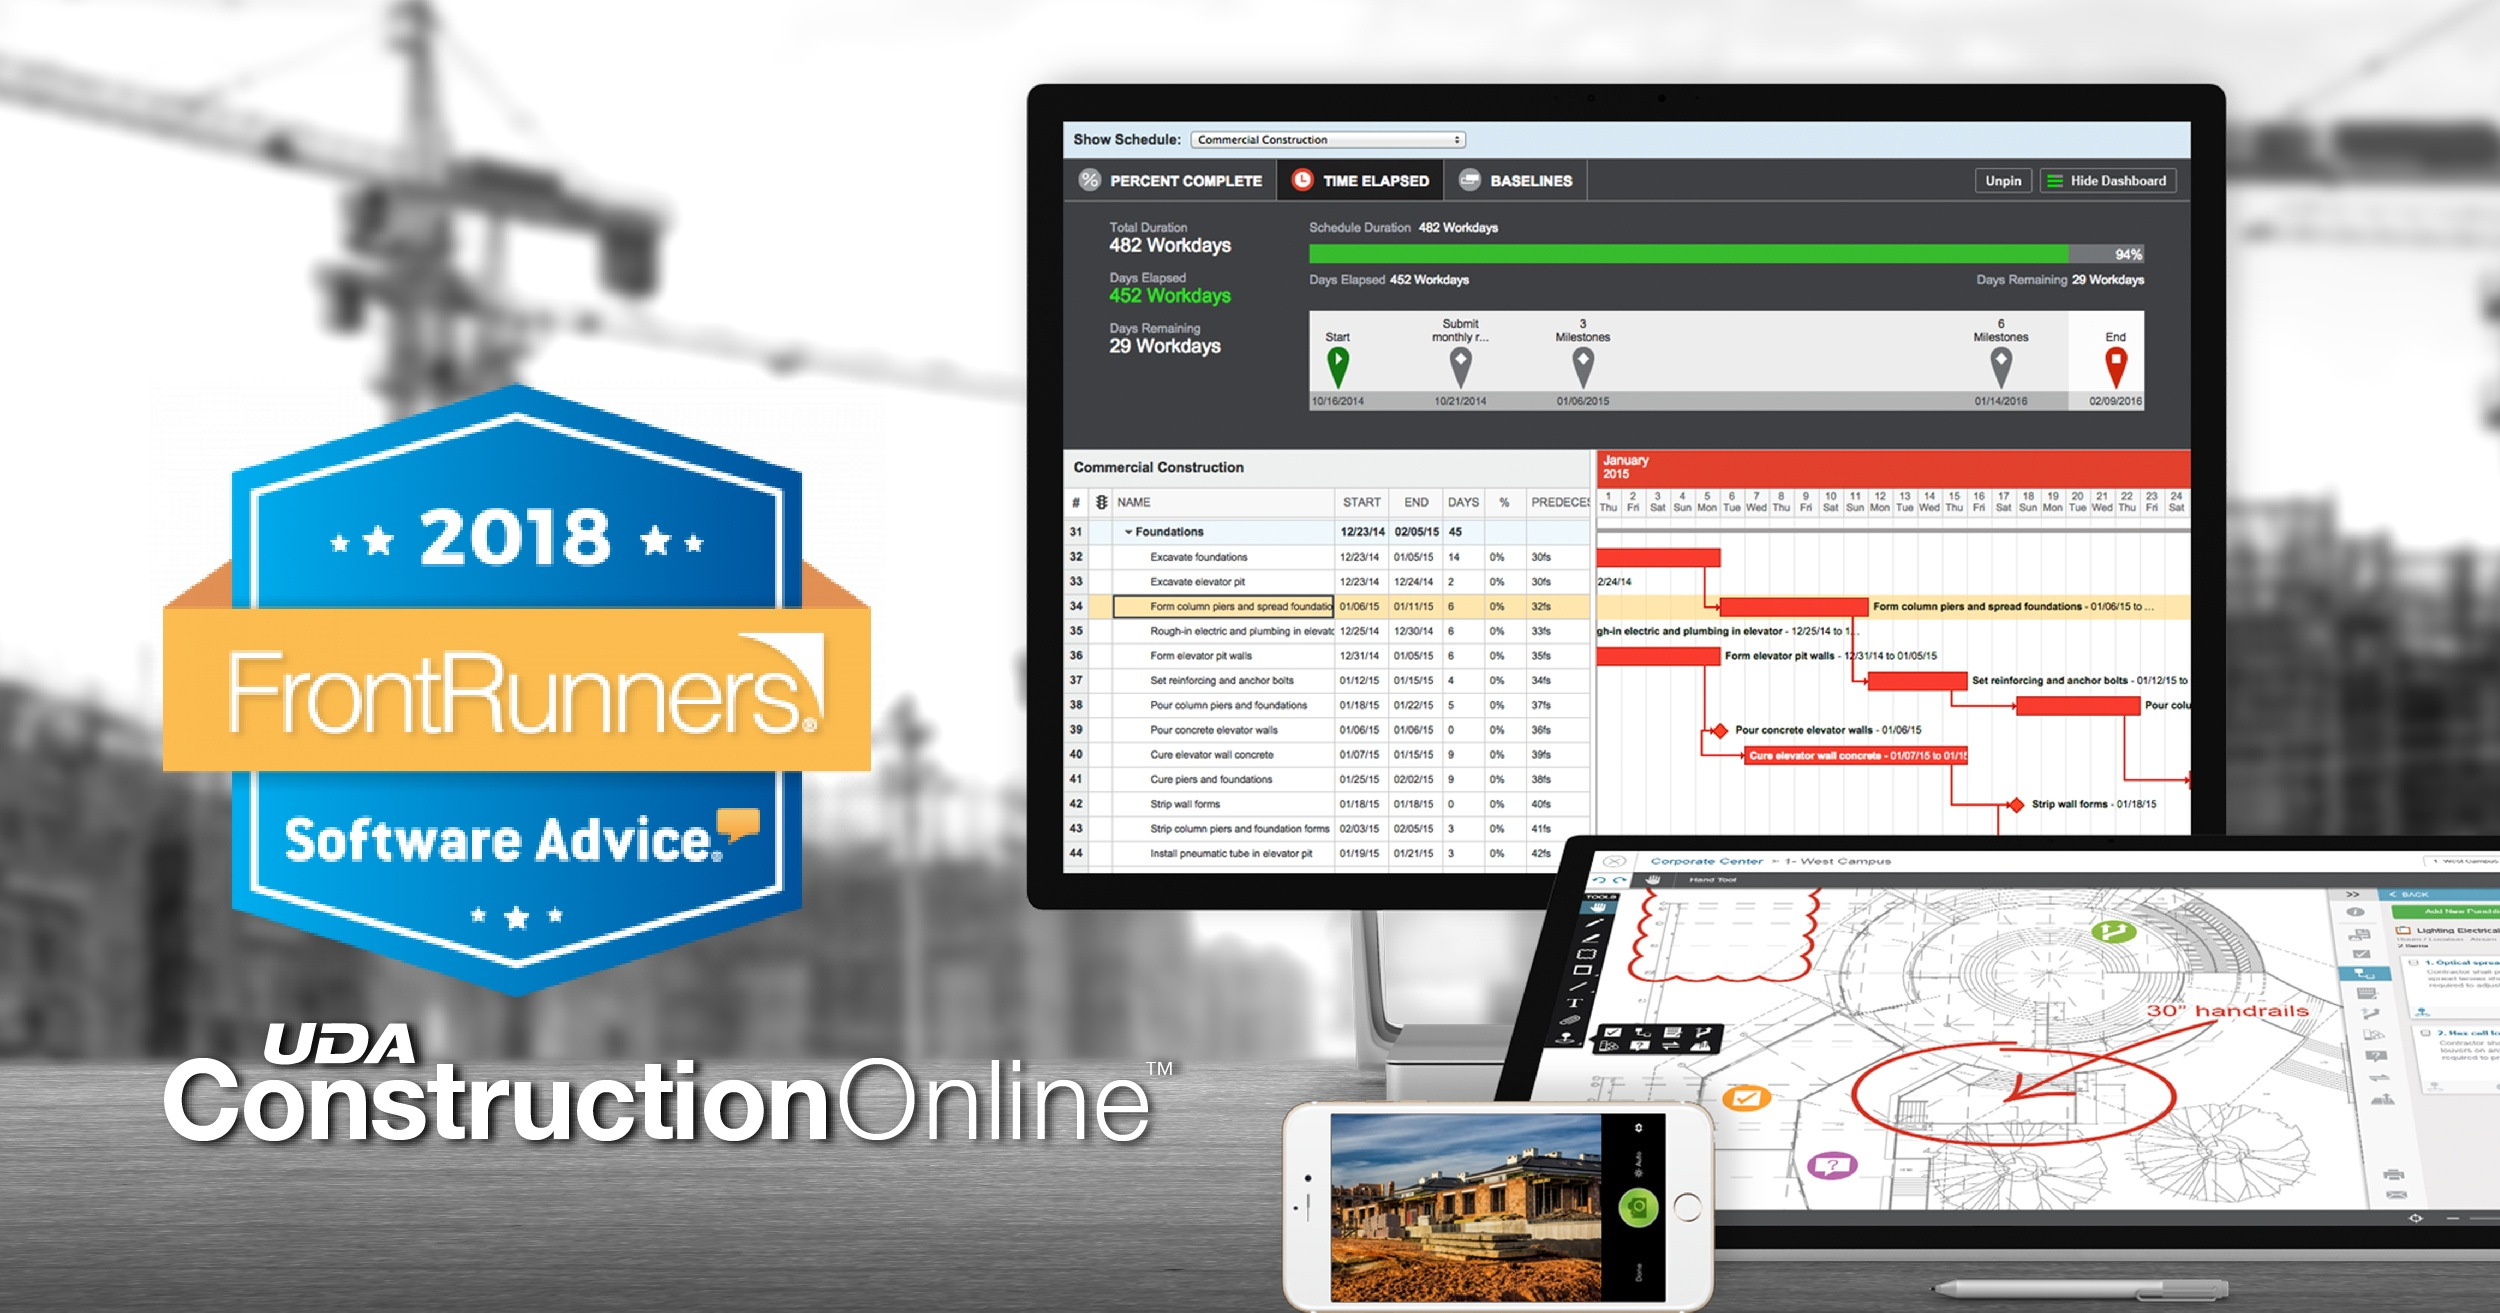 ConstructionOnline Named FrontRunner for Construction Management Software